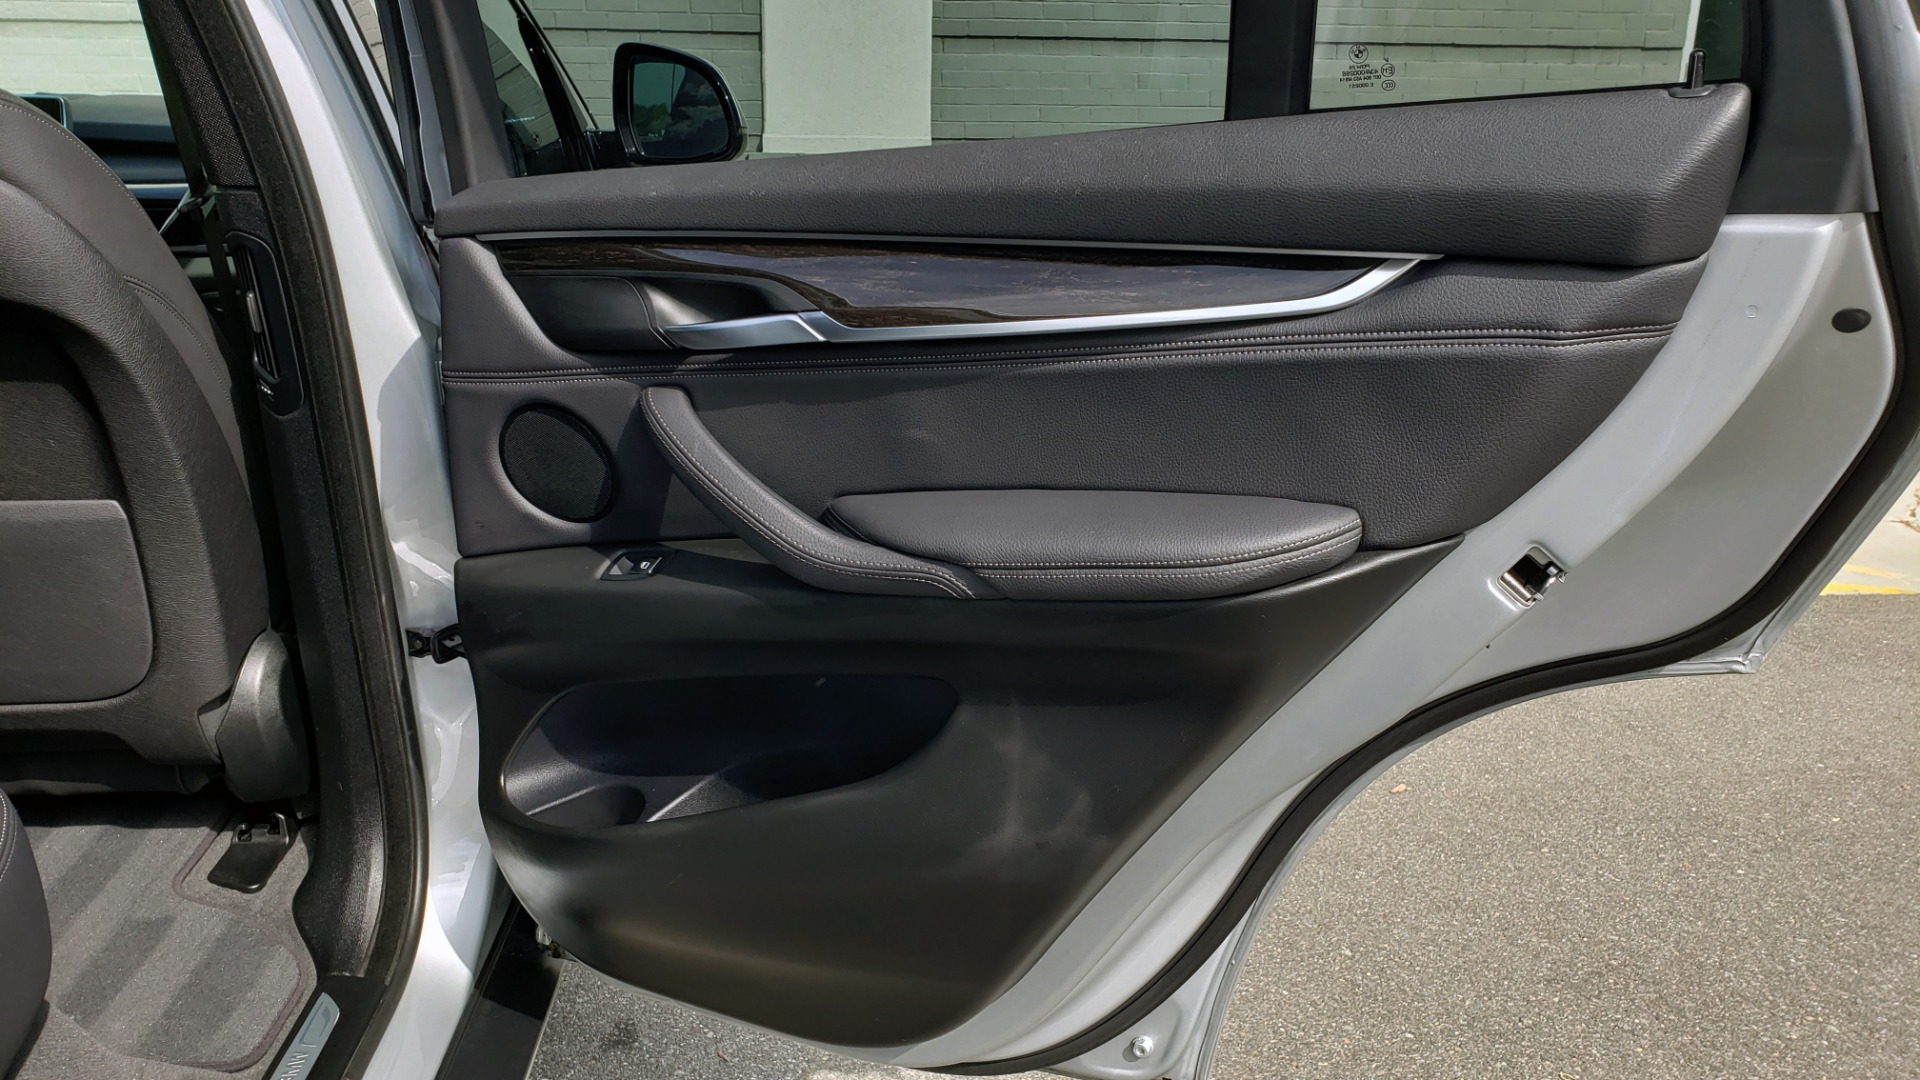 Used 2018 BMW X5 XDRIVE35I PREMIUM / NAV / PANO-ROOF / DRIVER ASST / REARVIEW for sale Sold at Formula Imports in Charlotte NC 28227 76